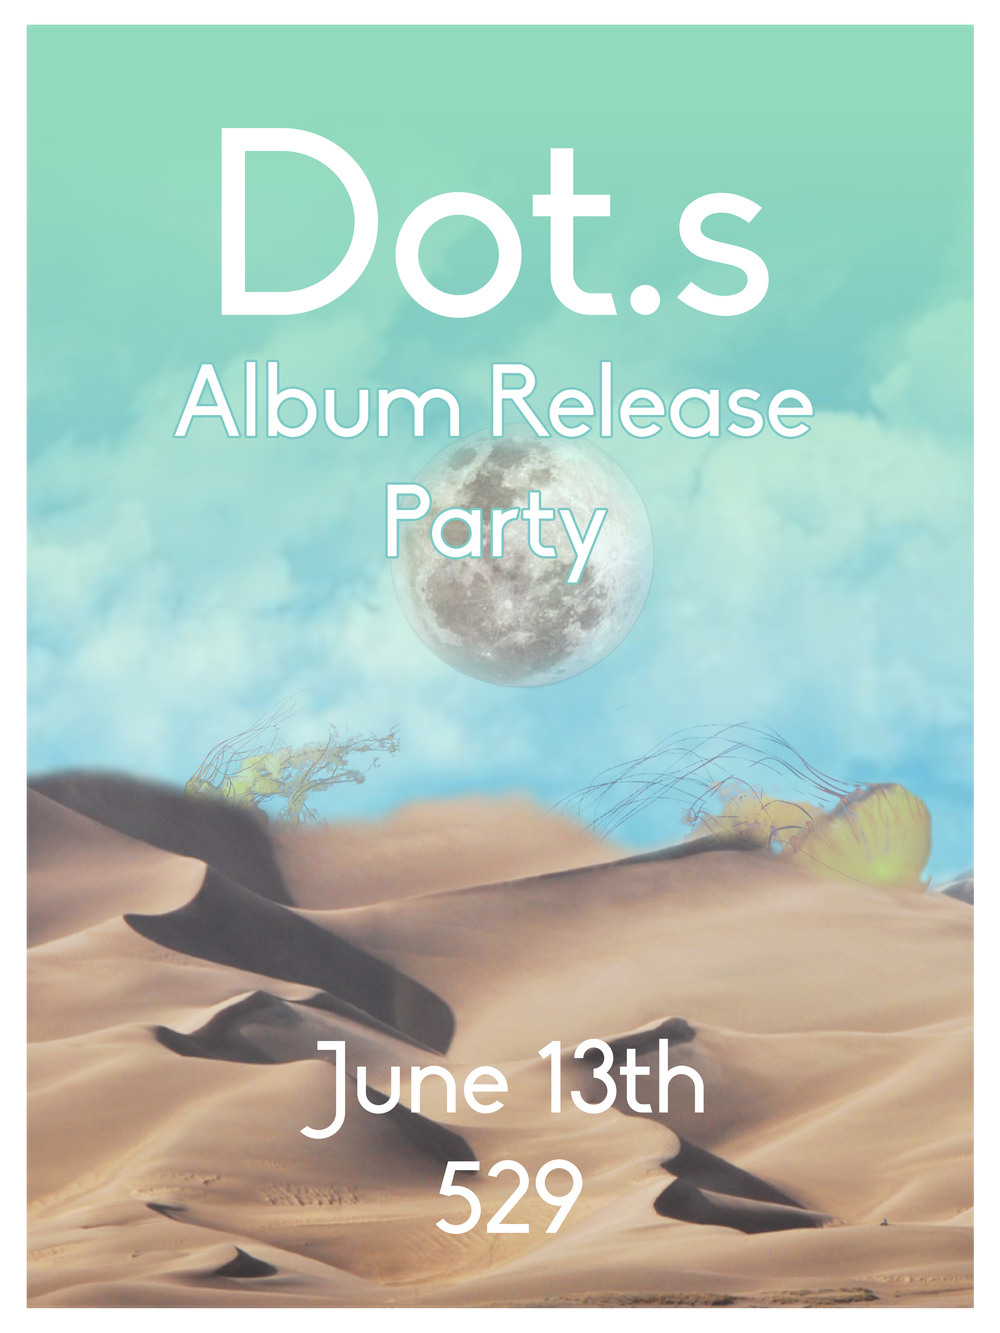 Deer Bear Wolf Records releases its latest album, Jellyfiss by Dot.s, this Saturday night at 529.